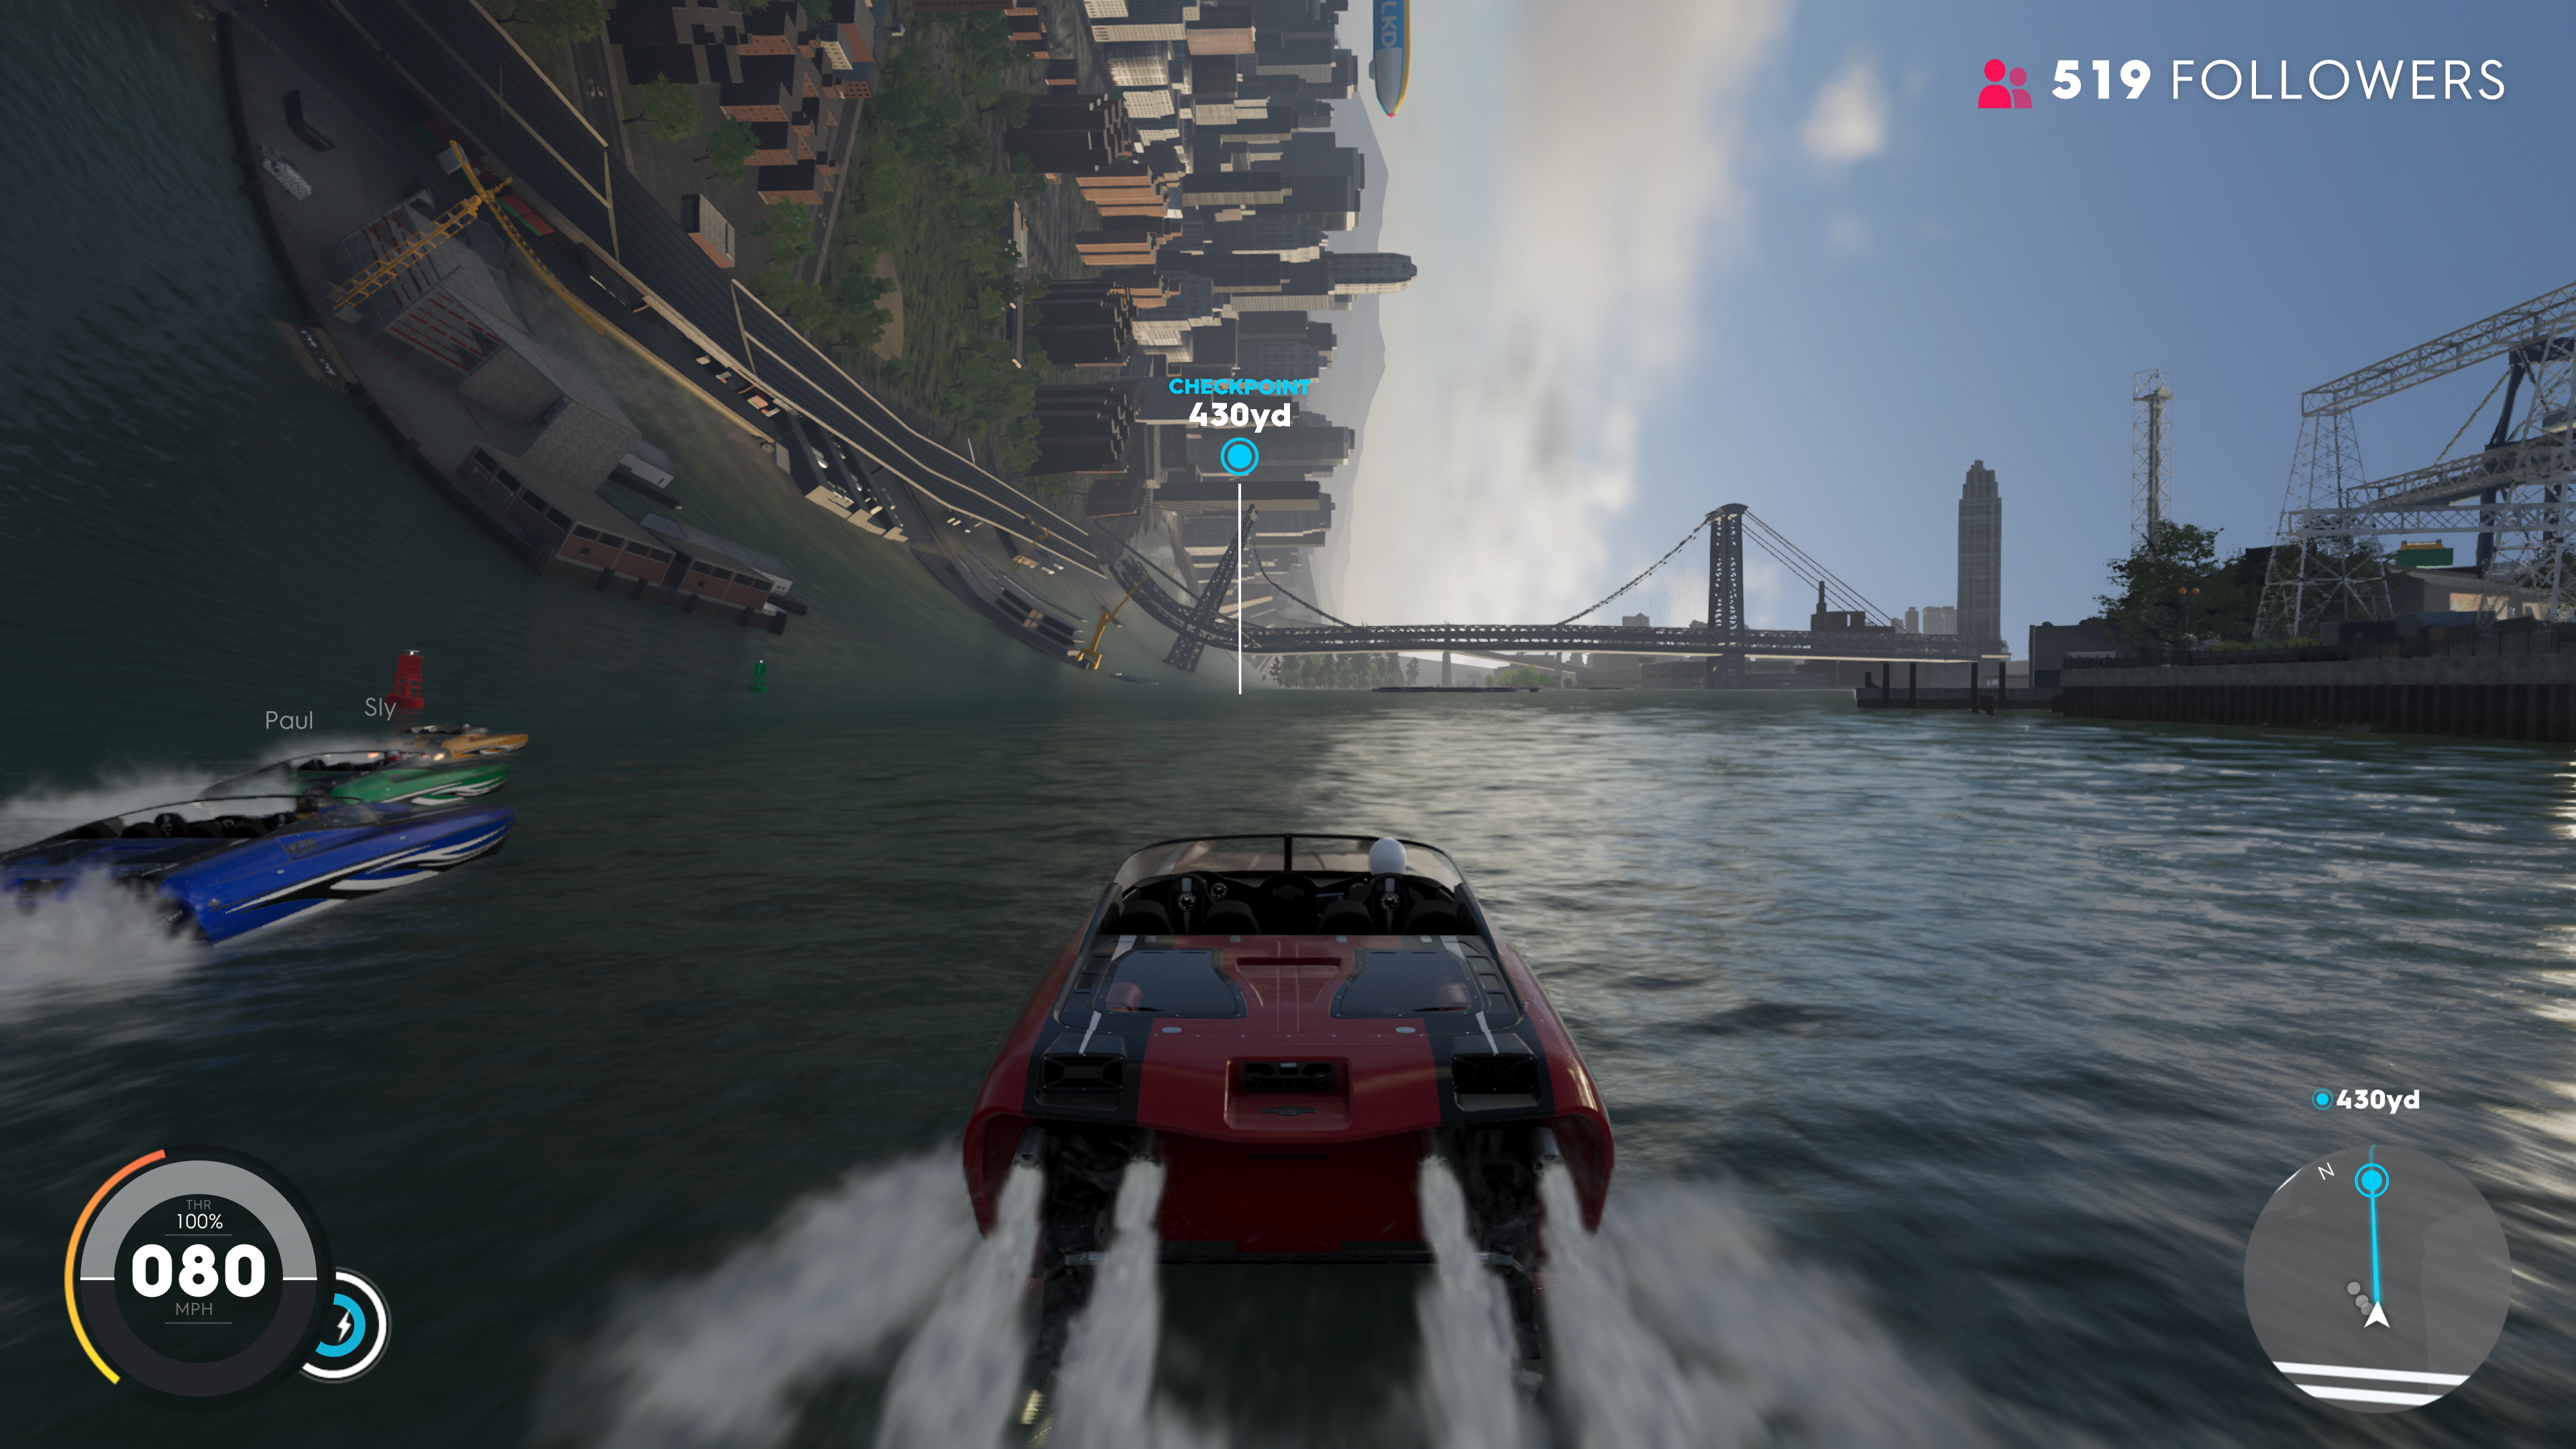 The Crew 2 takes Forza Horizon's concept and ramps up the scale